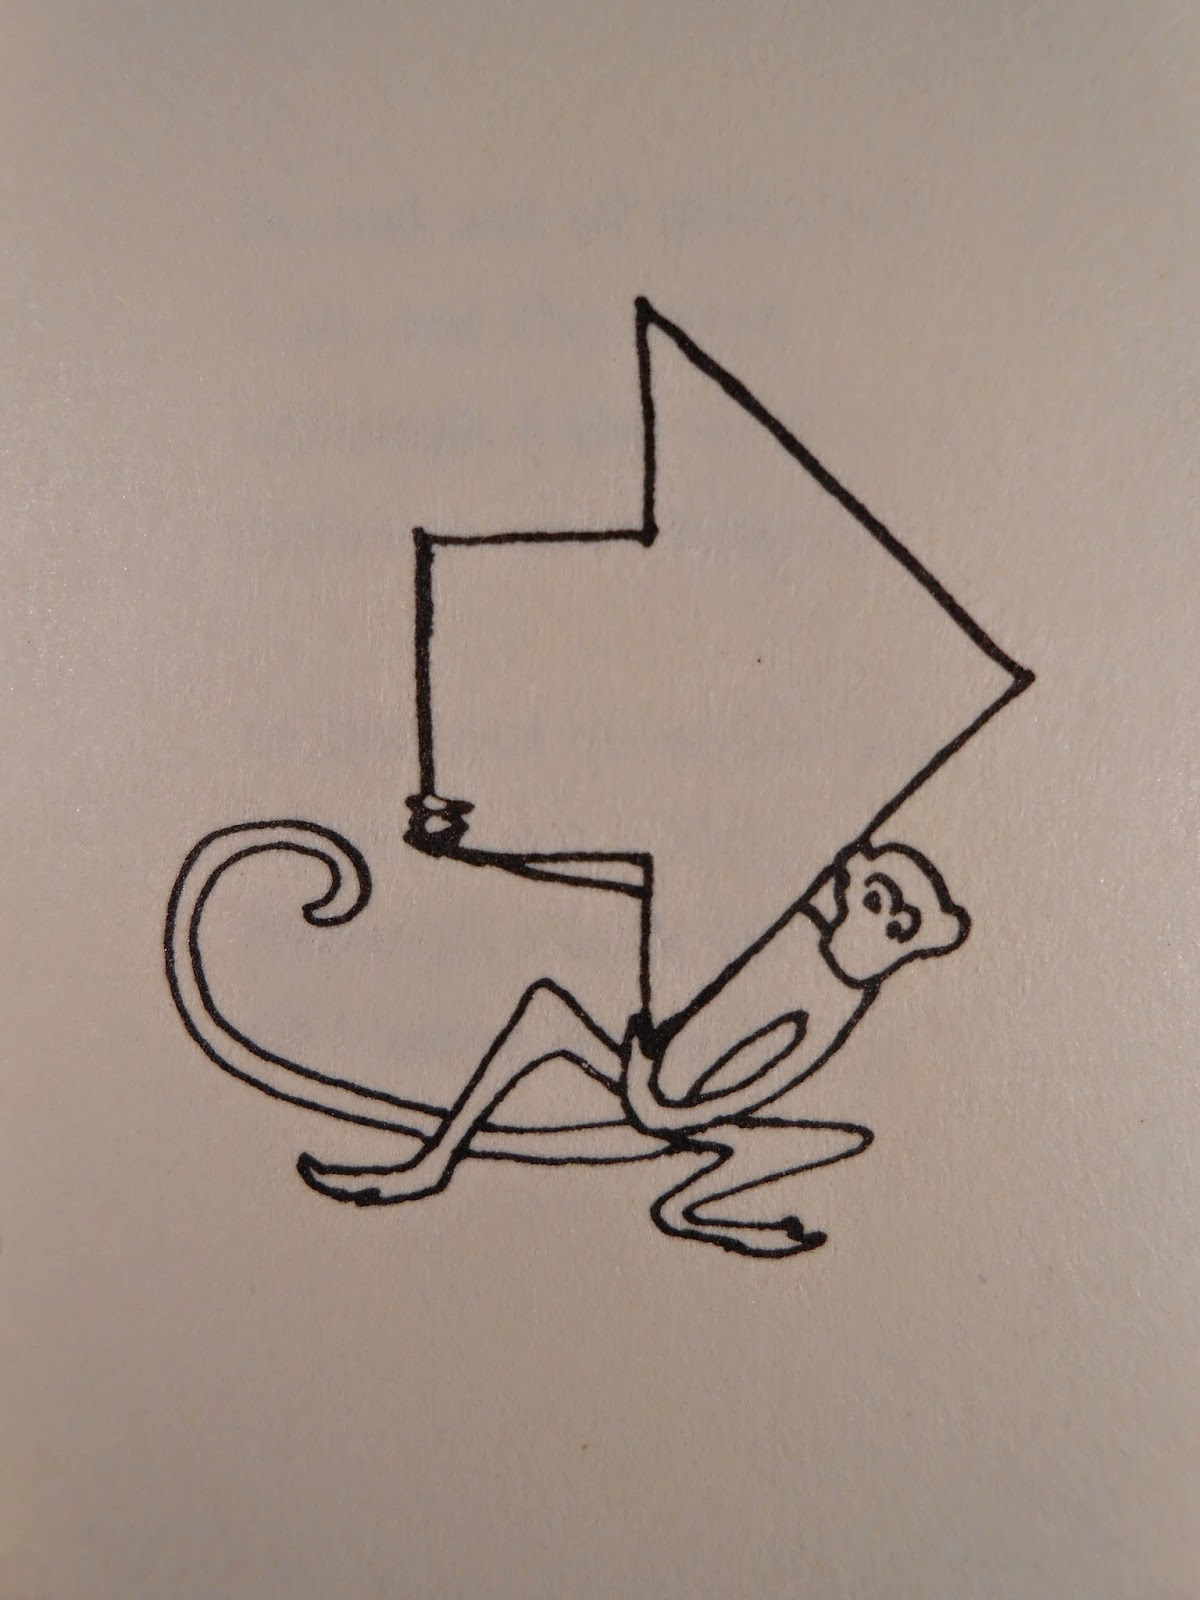 A simple pen drawing of a monkey holding a giant arrow.